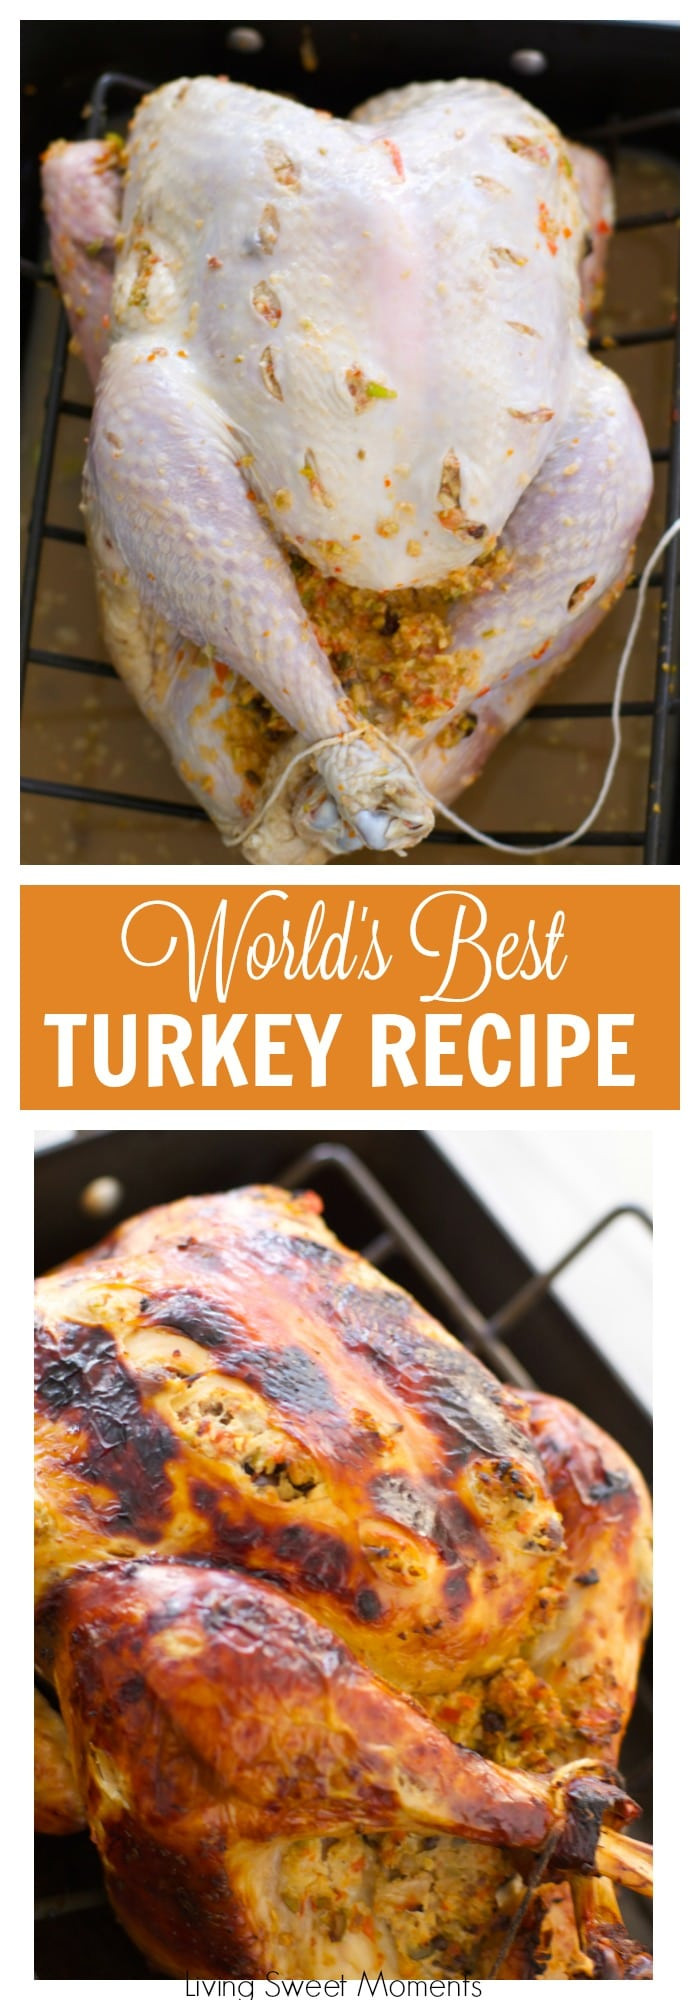 Best Thanksgiving Turkey Recipe Ever  The World s Best Turkey Recipe A Tutorial Living Sweet